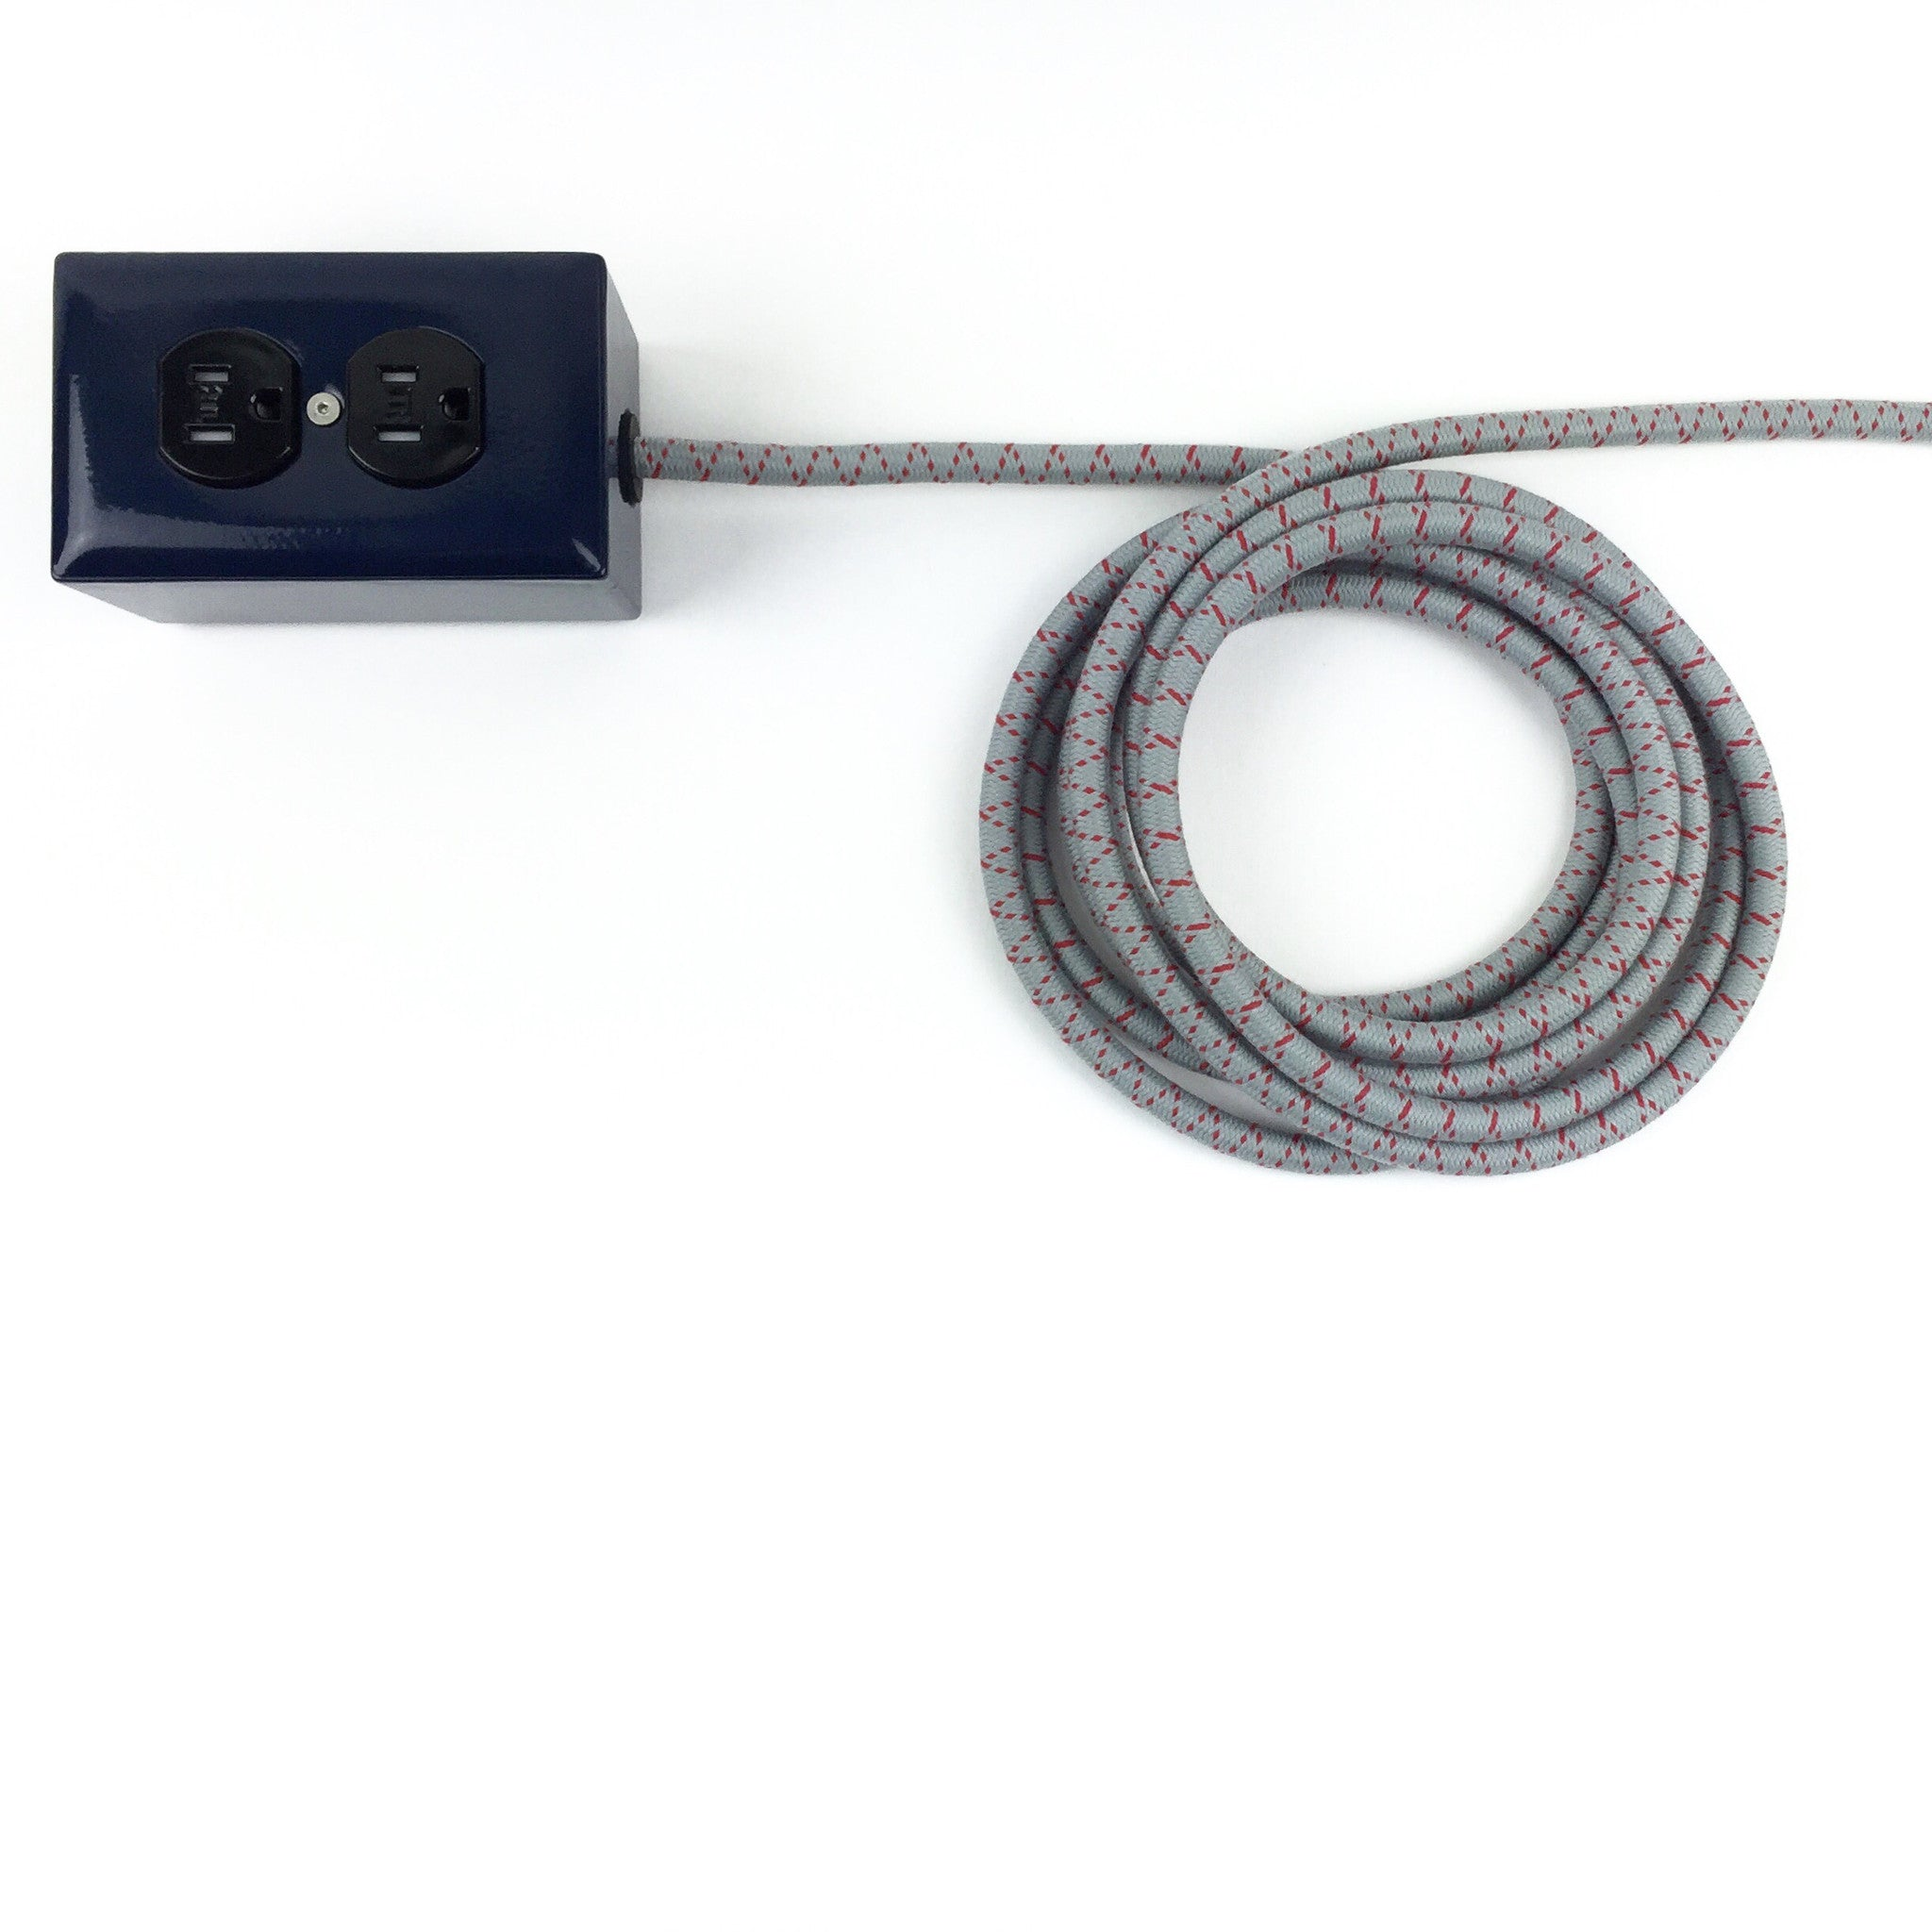 New! Navy Blue Extō - A Modern Dual-Tamper-Resistant Outlet, 13-AMP Extension Cord